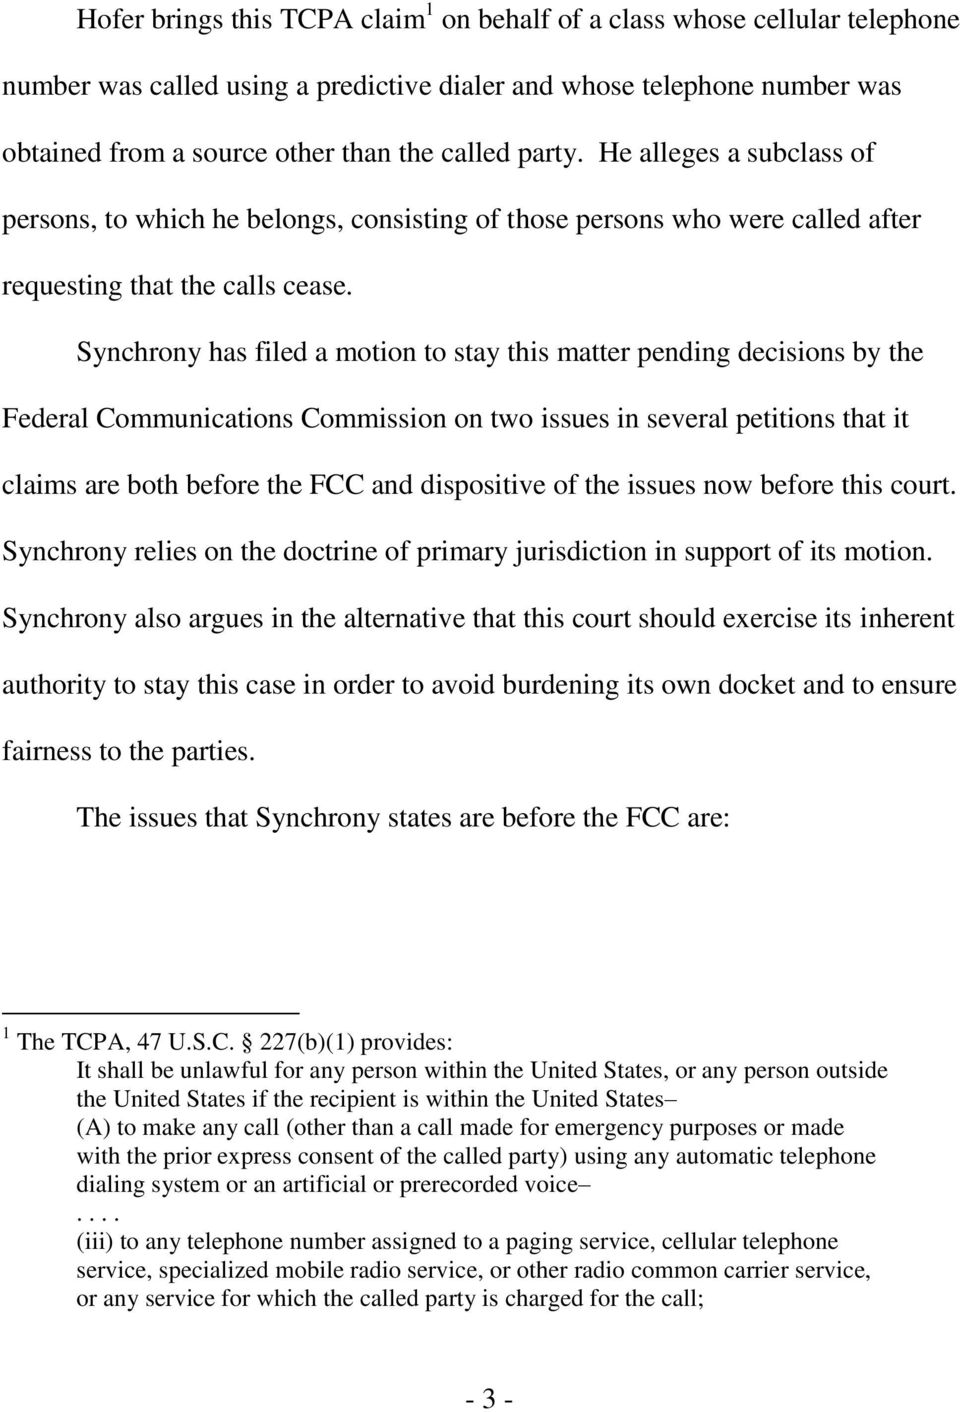 Synchrony has filed a motion to stay this matter pending decisions by the Federal Communications Commission on two issues in several petitions that it claims are both before the FCC and dispositive